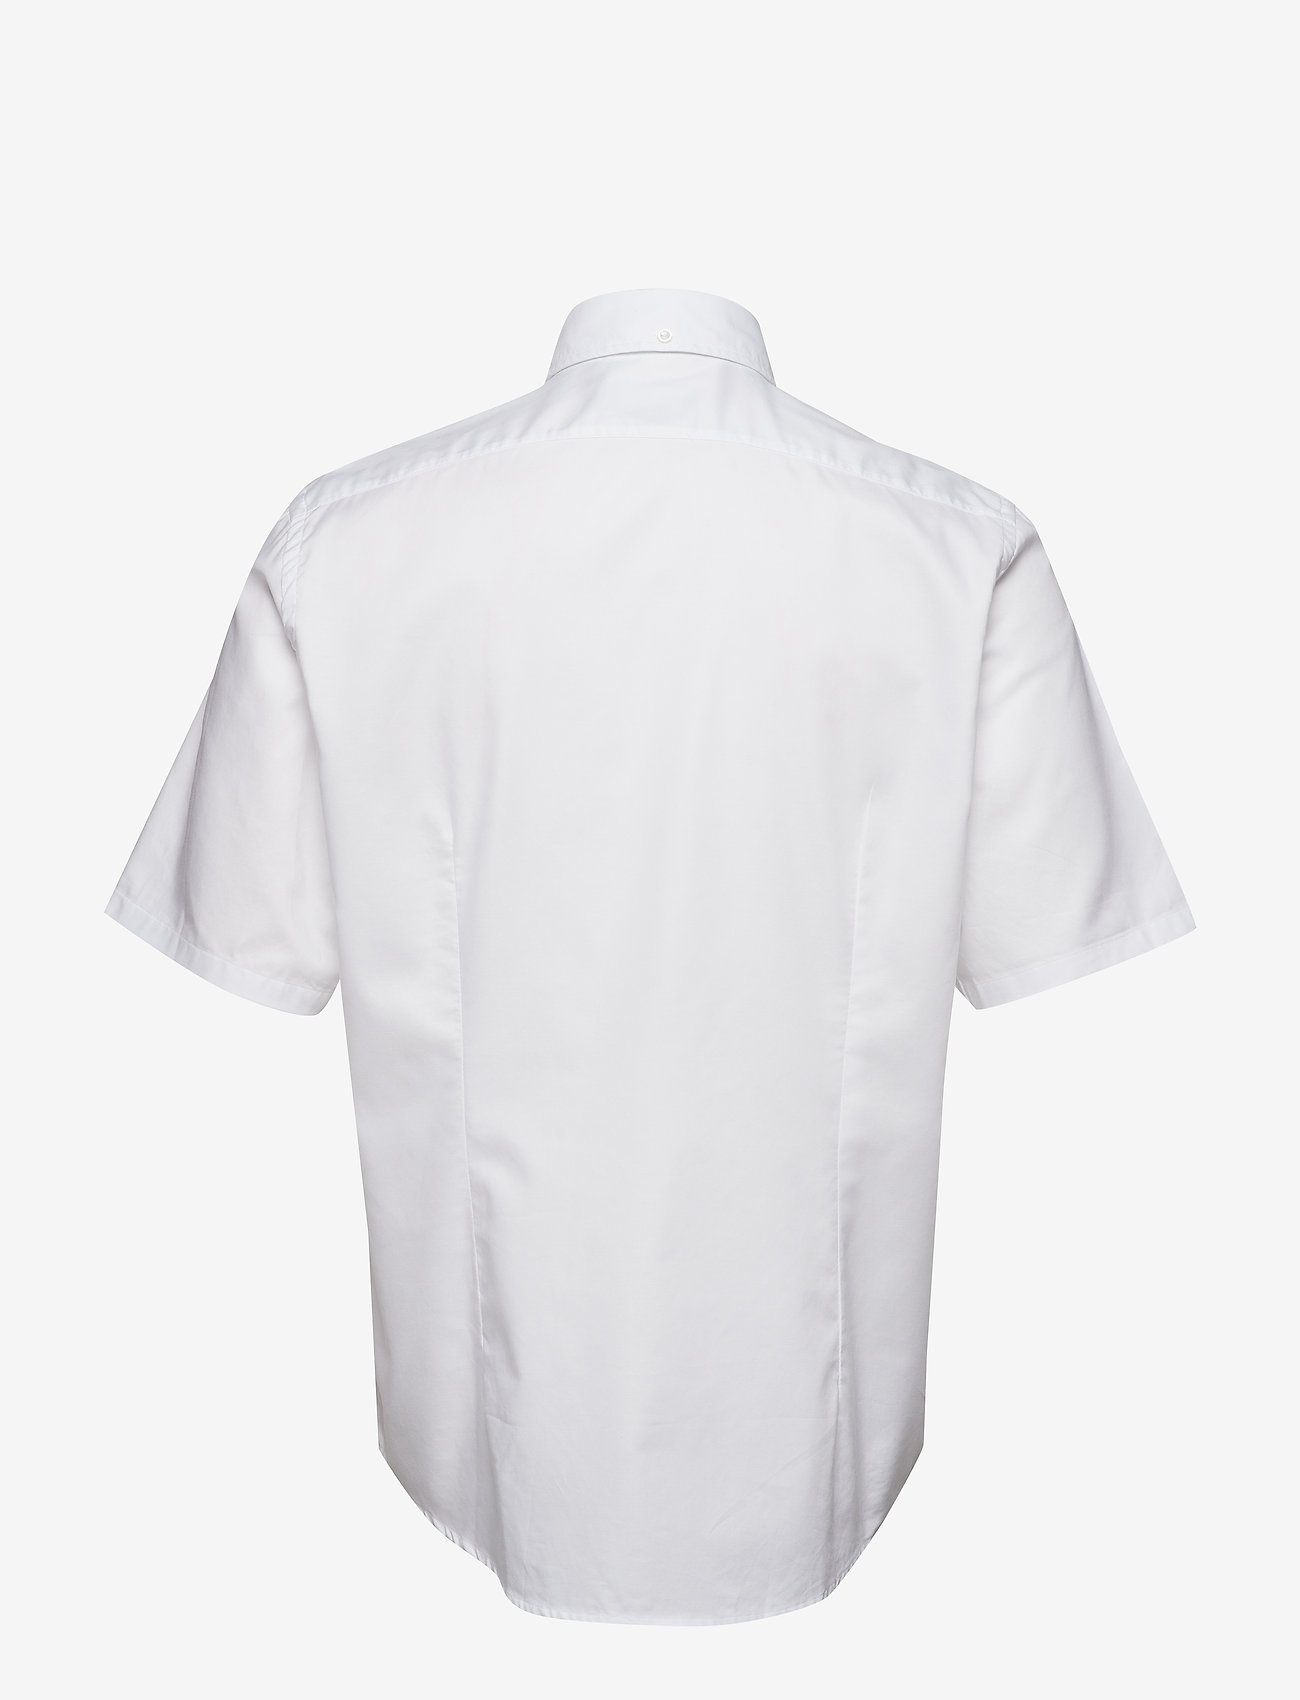 Eton - White Natural Stretch Oxford - Contemporary fit - chemises basiques - white